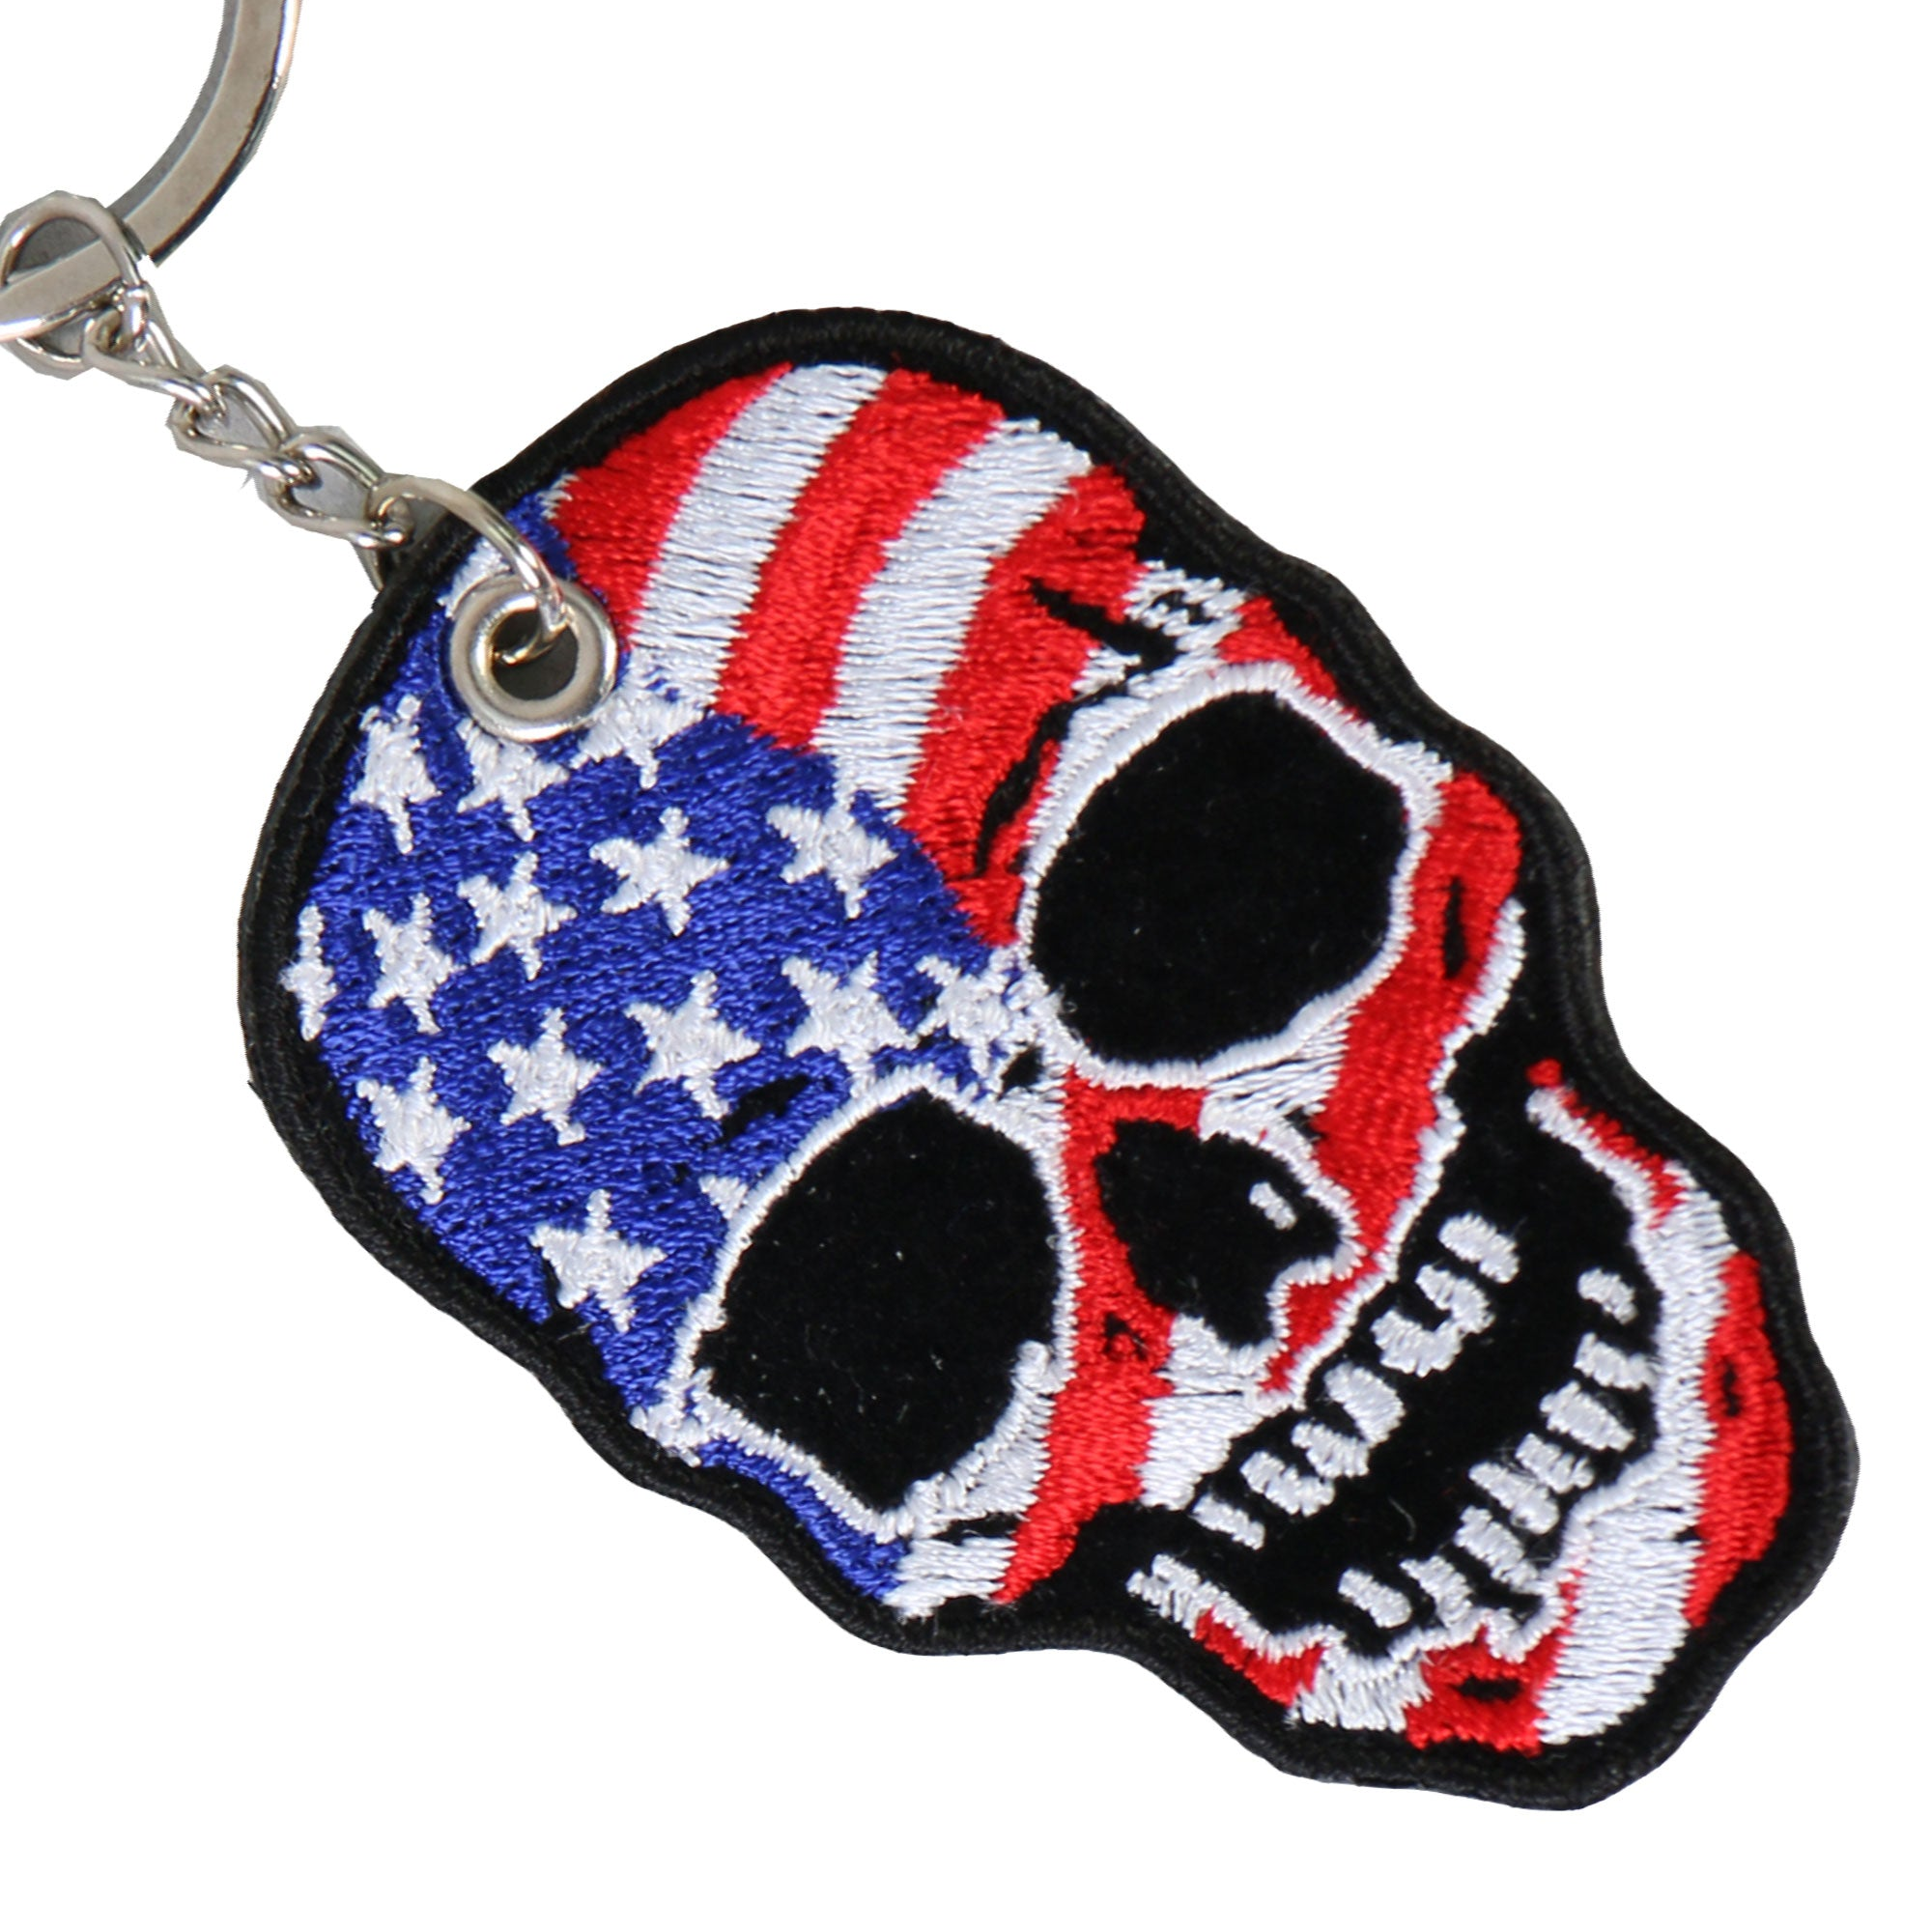 Hot Leathers American Flag Skull Embroidered Key Chain